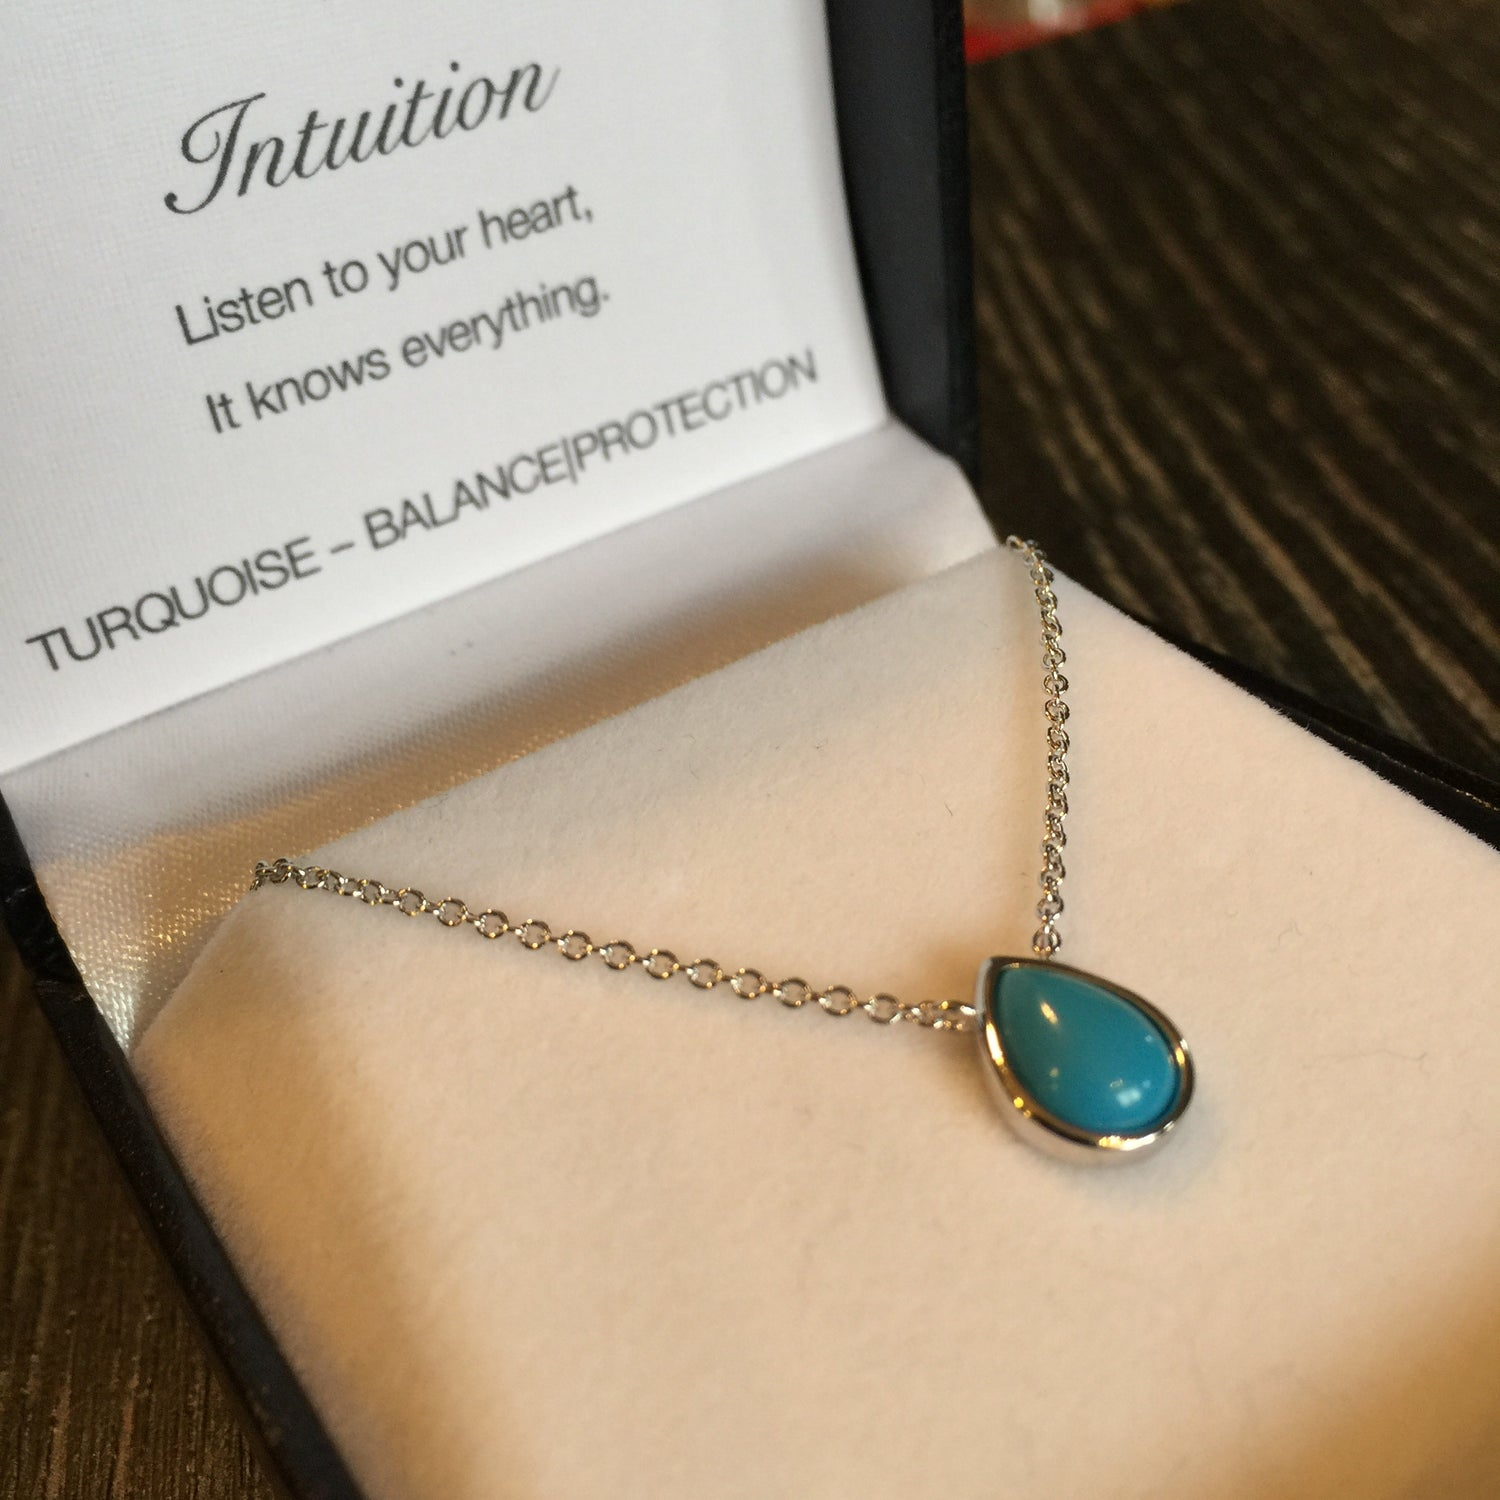 Turquoise - Intuition